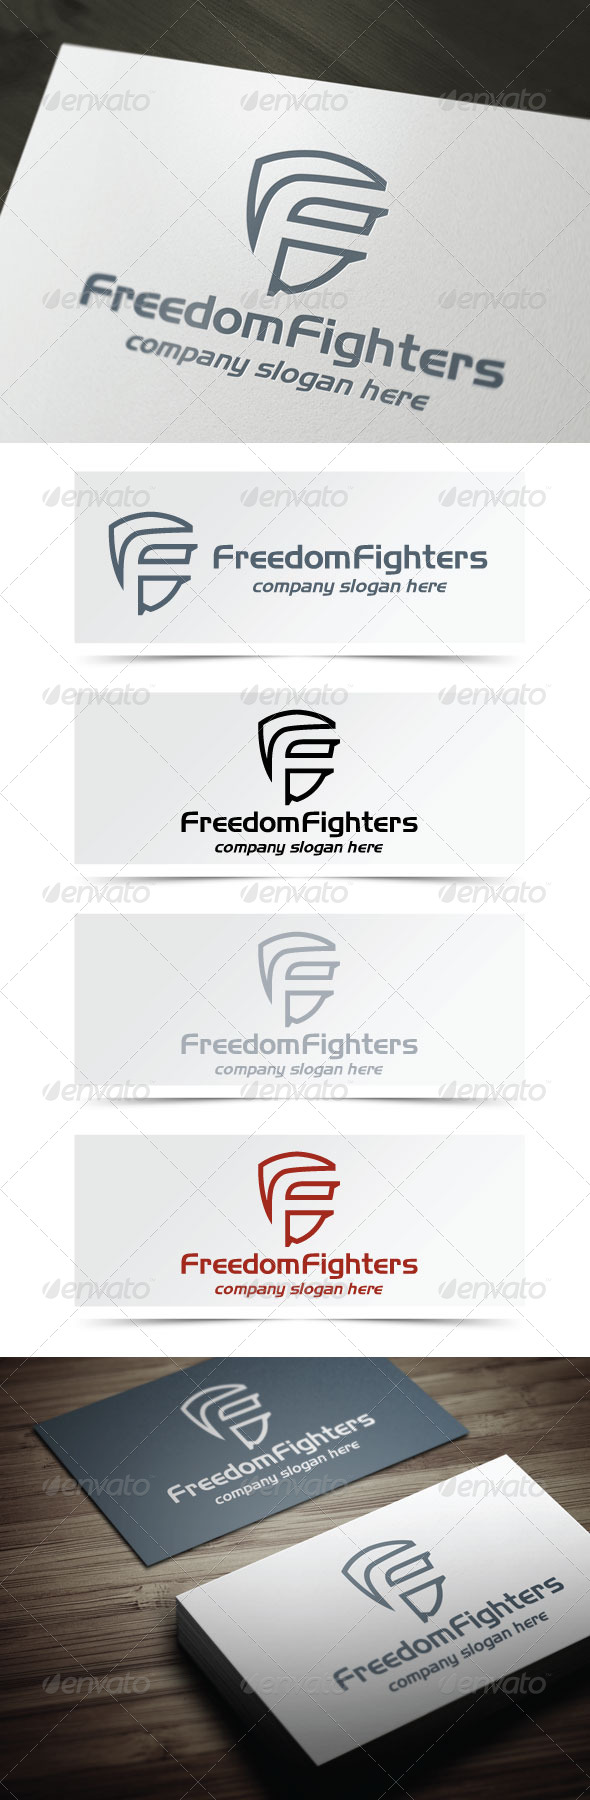 Freedom Fighters - Letters Logo Templates